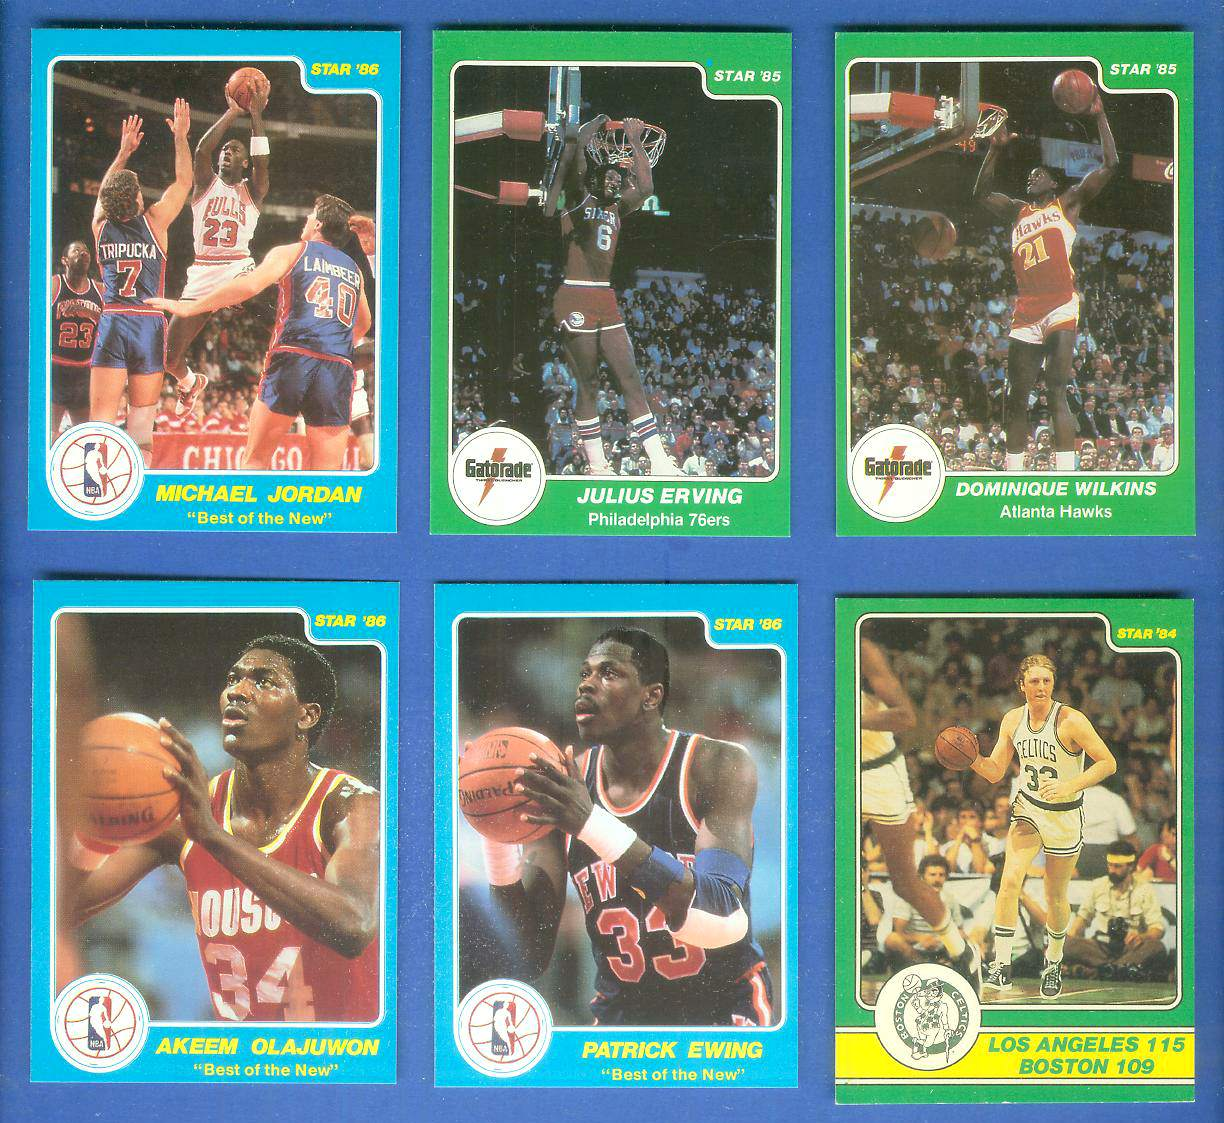 1985 Star 'Lite All-Stars' #.8 Kareem Abdul-Jabbar Basketball cards value